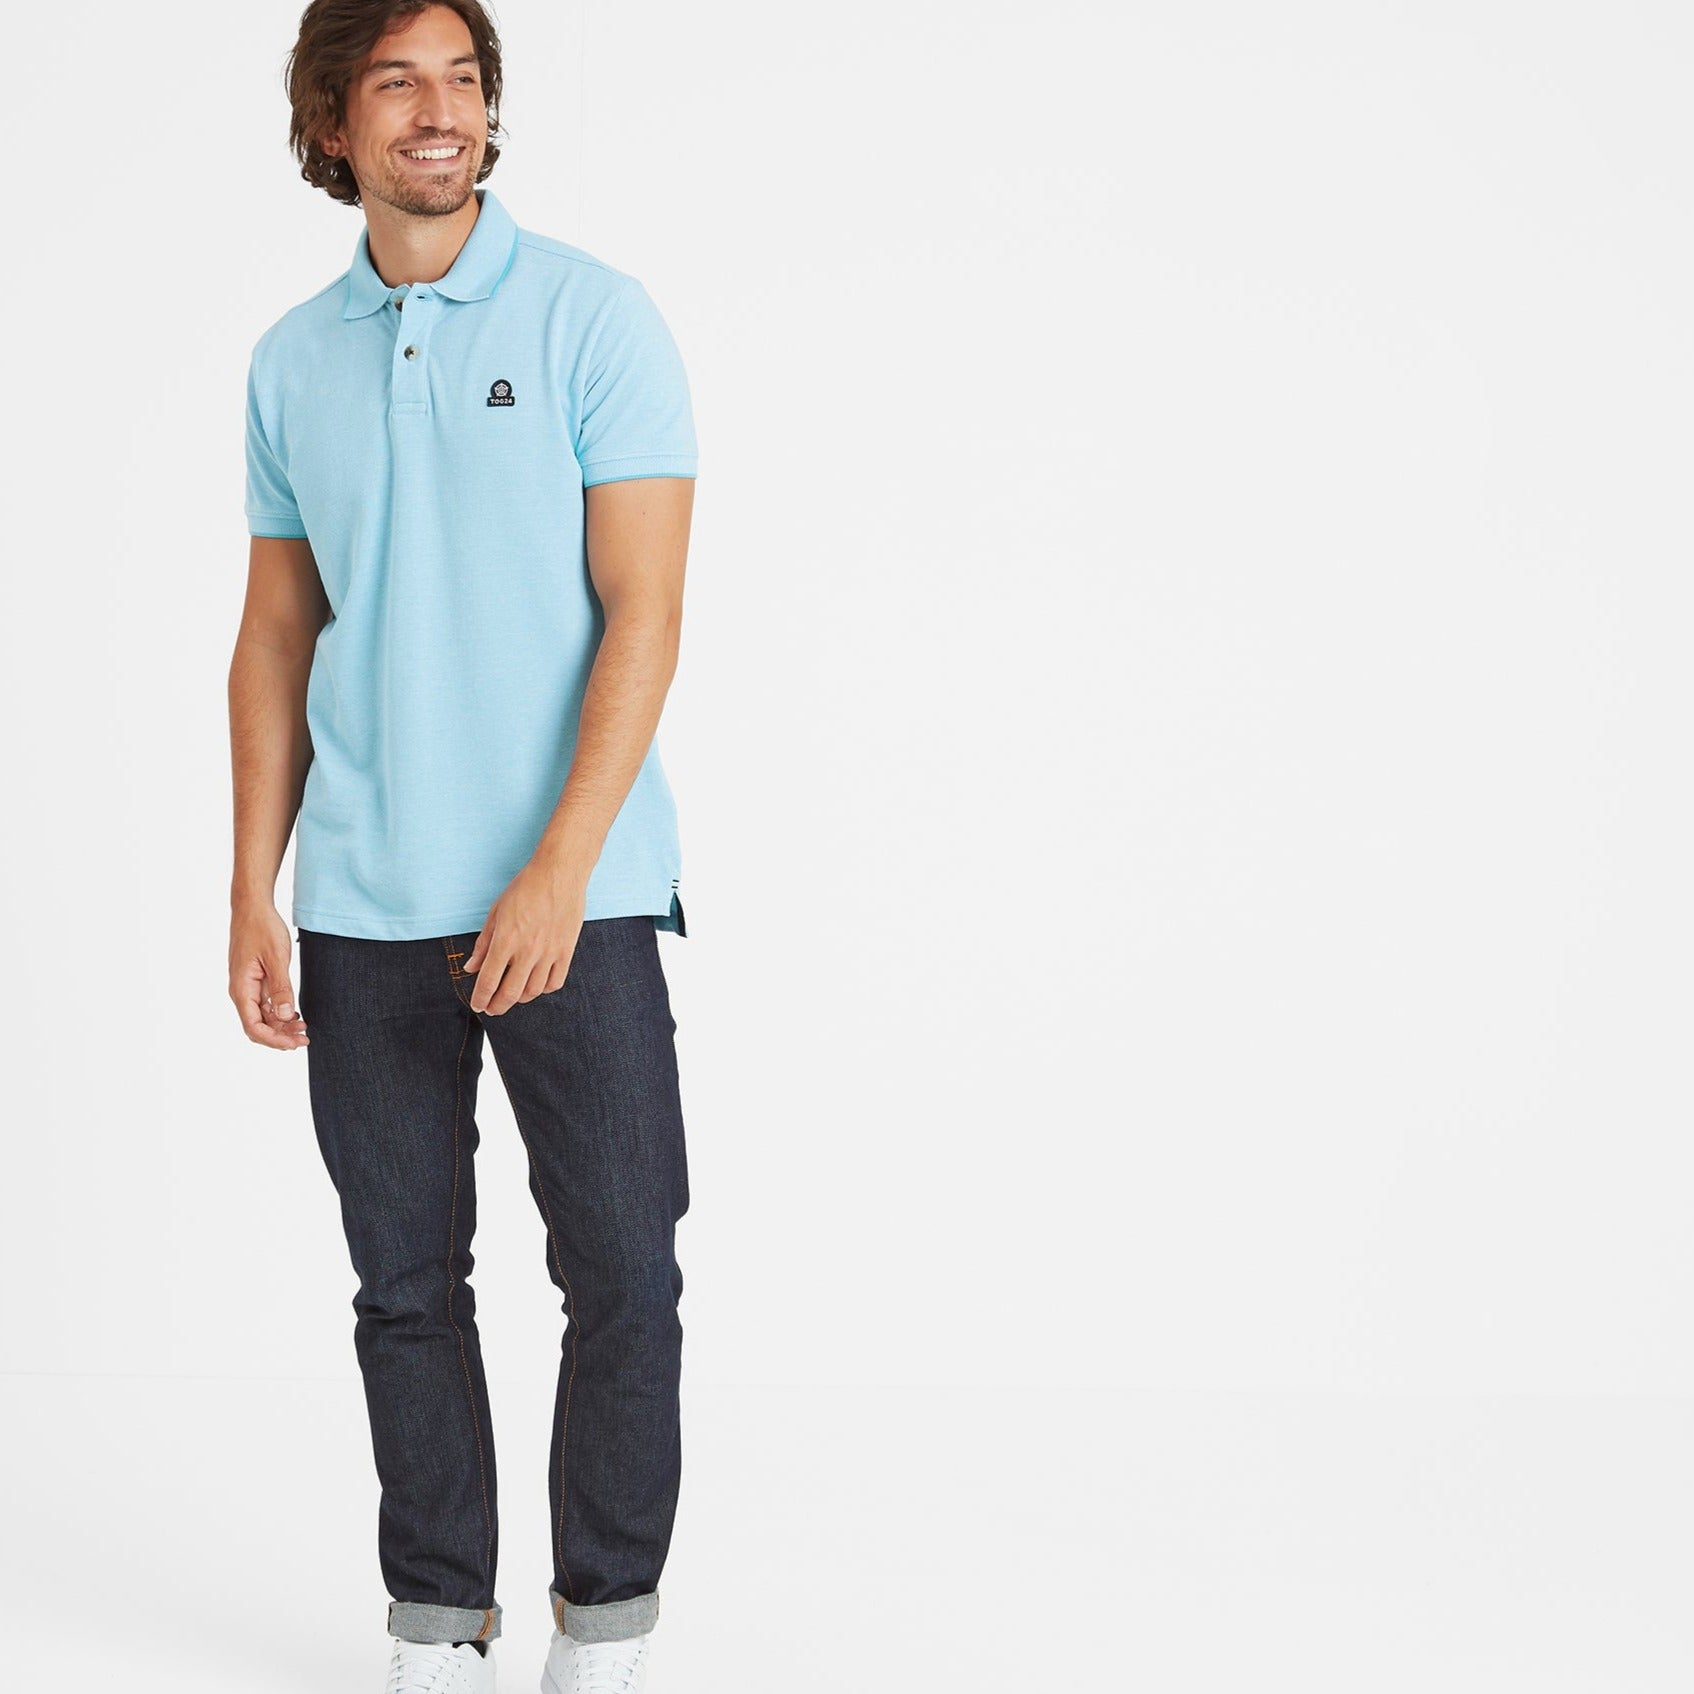 Patrick Mens Stripe Polo Shirt - Light Blue